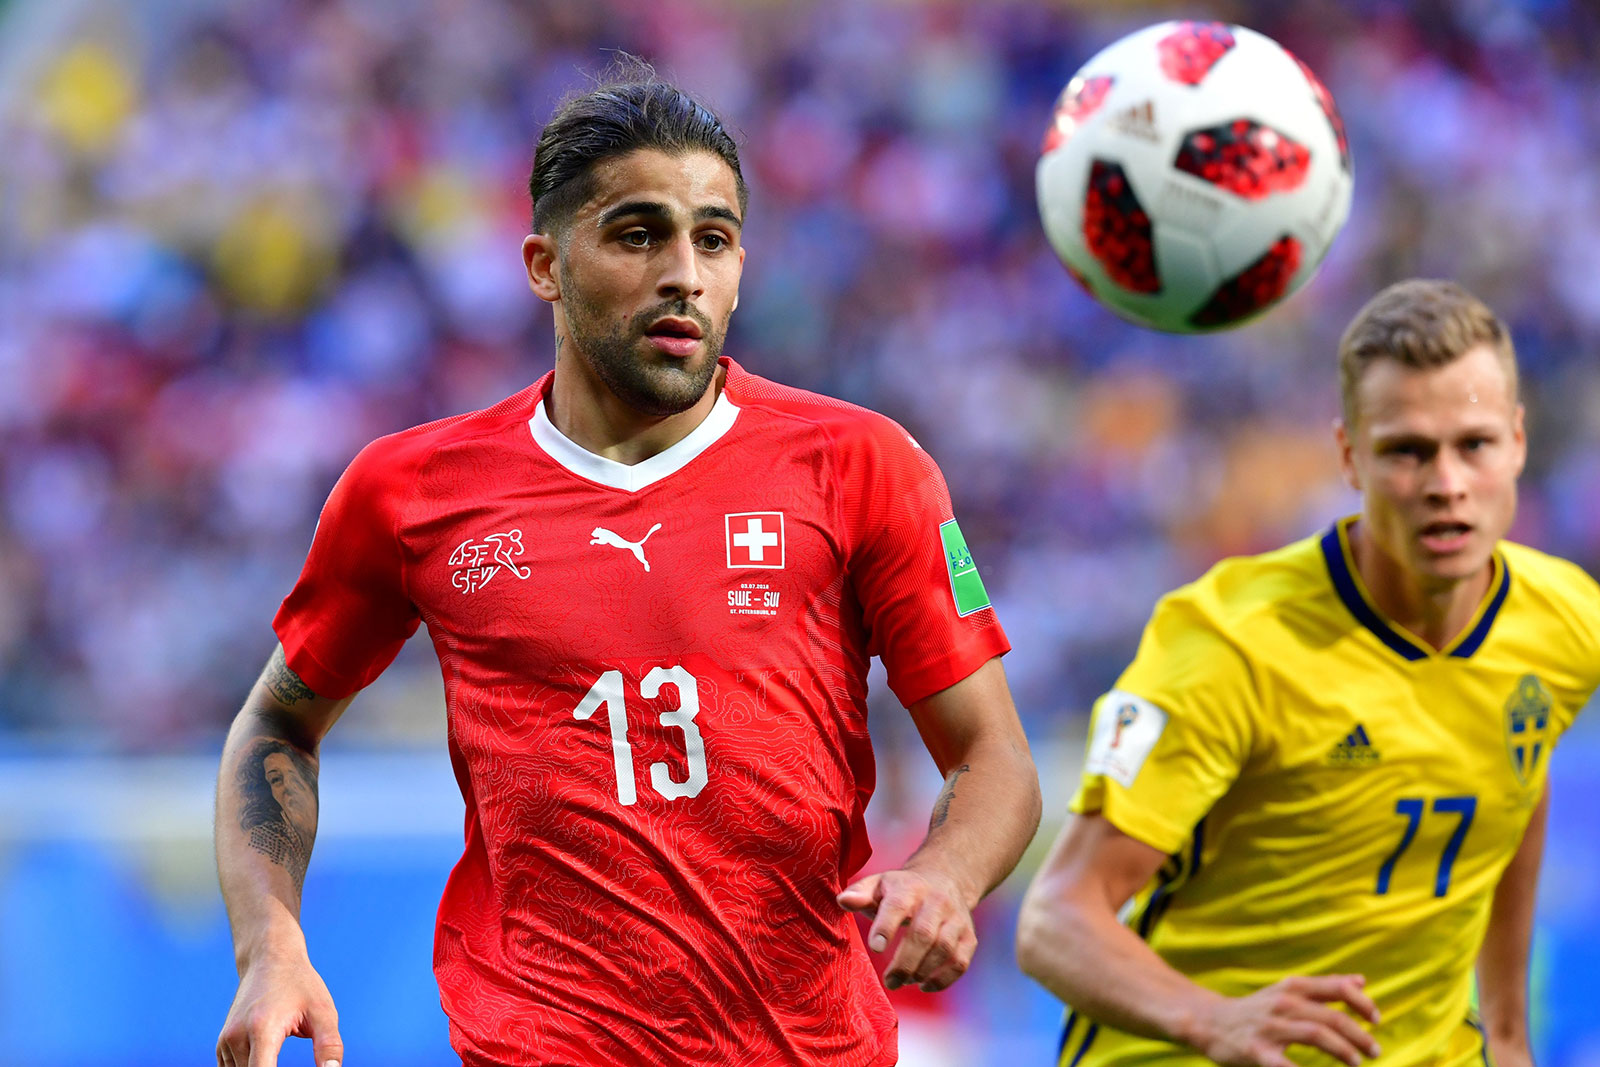 Ricardo Rodriguez and Viktor Claesson during the Sweden-Switzerland 2018 World Cup match at Saint Petersburg Stadium on July 3, 2018. (GIUSEPPE CACACE/AFP/Getty Images)